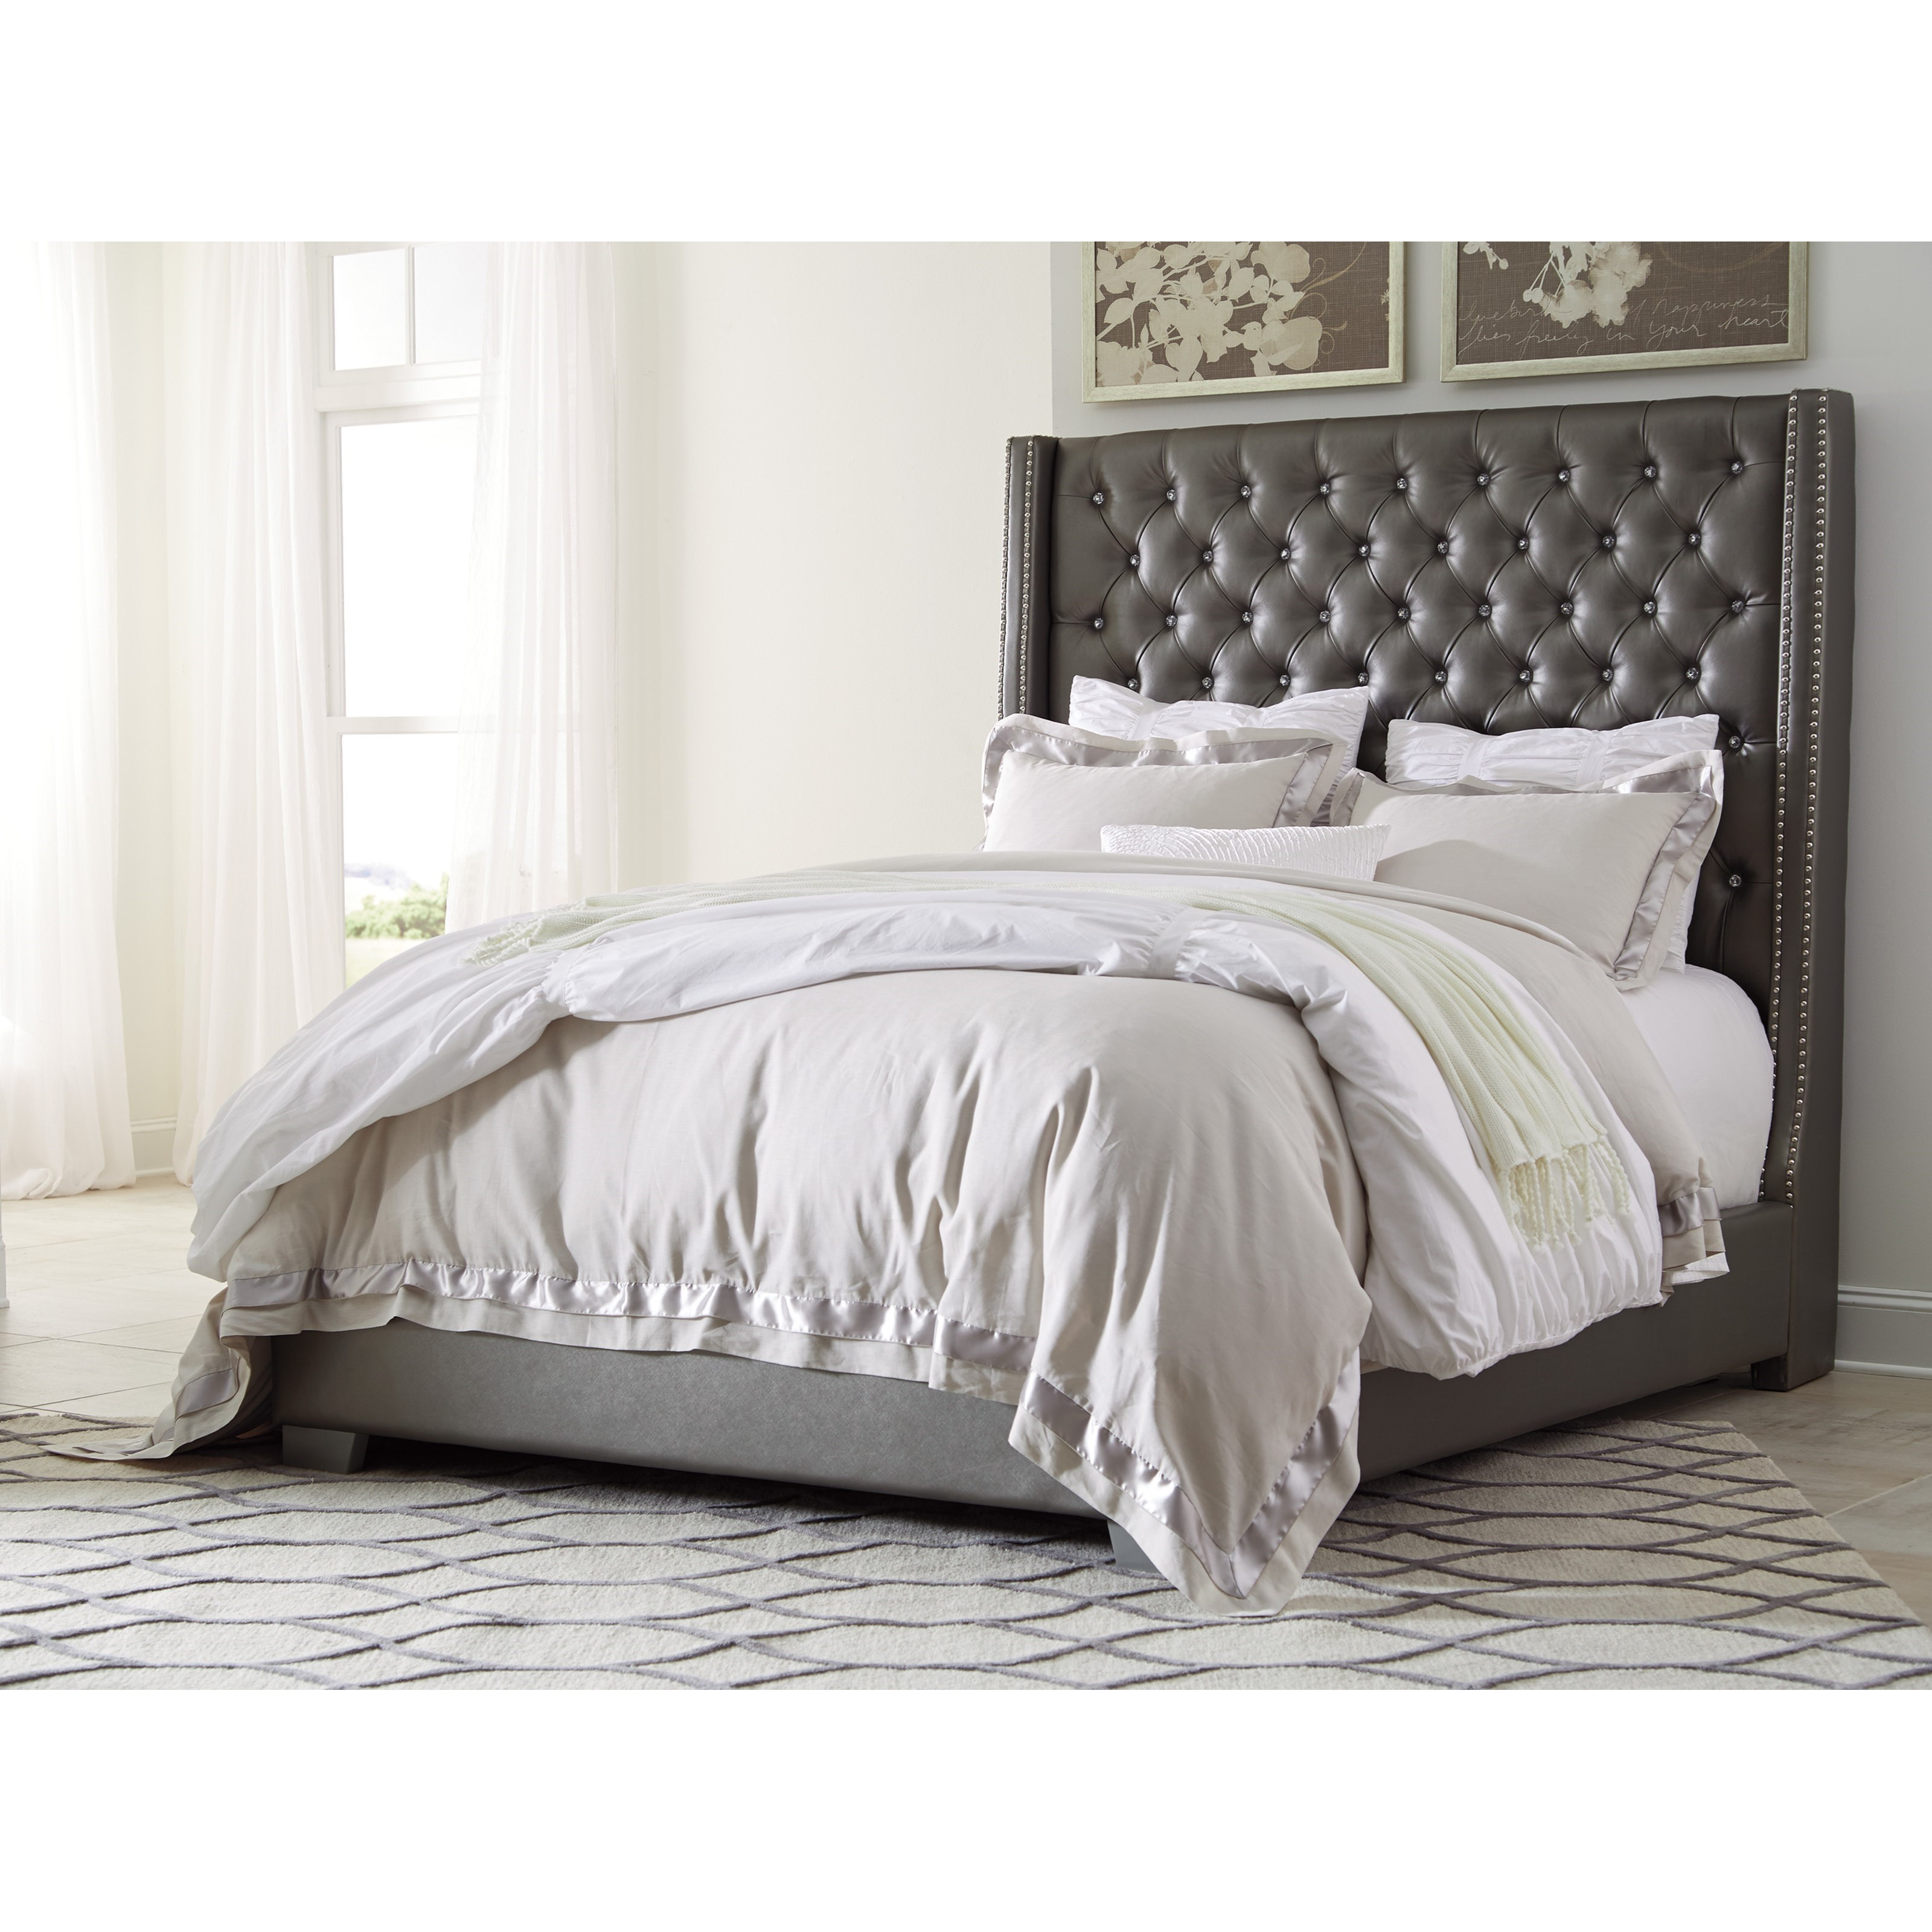 Signature Design By Ashley Coralayne Queen Upholstered Bed With Tall Headboard With Faux Crystal